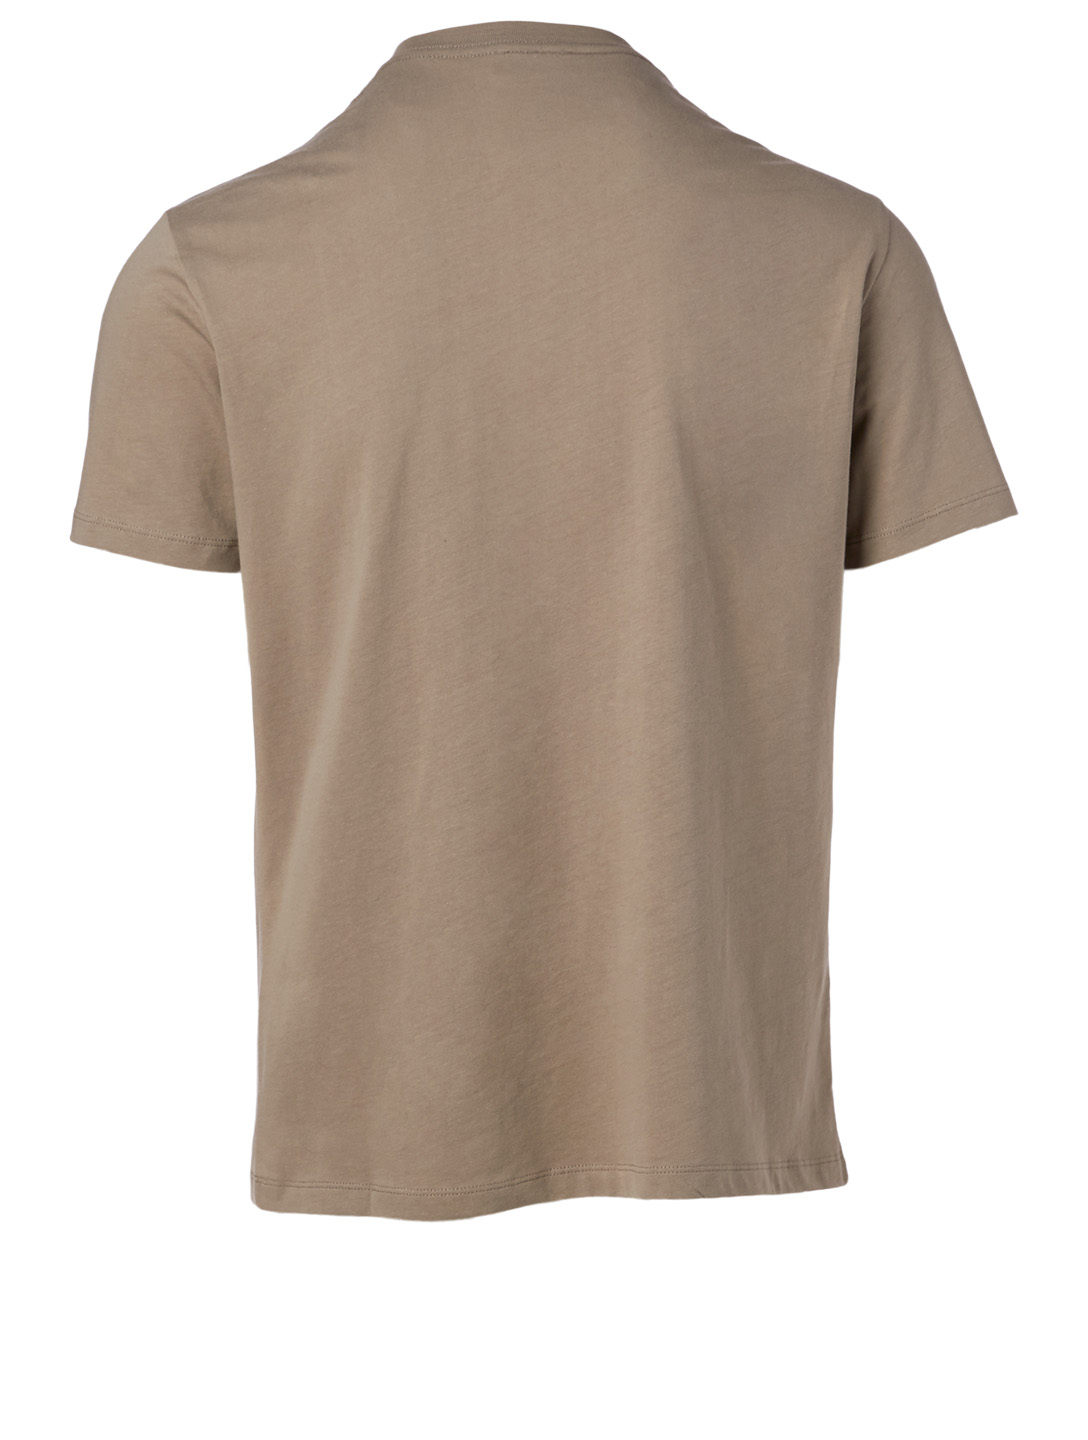 RAF SIMONS Xanthophobia Cotton T-Shirt Men's Beige